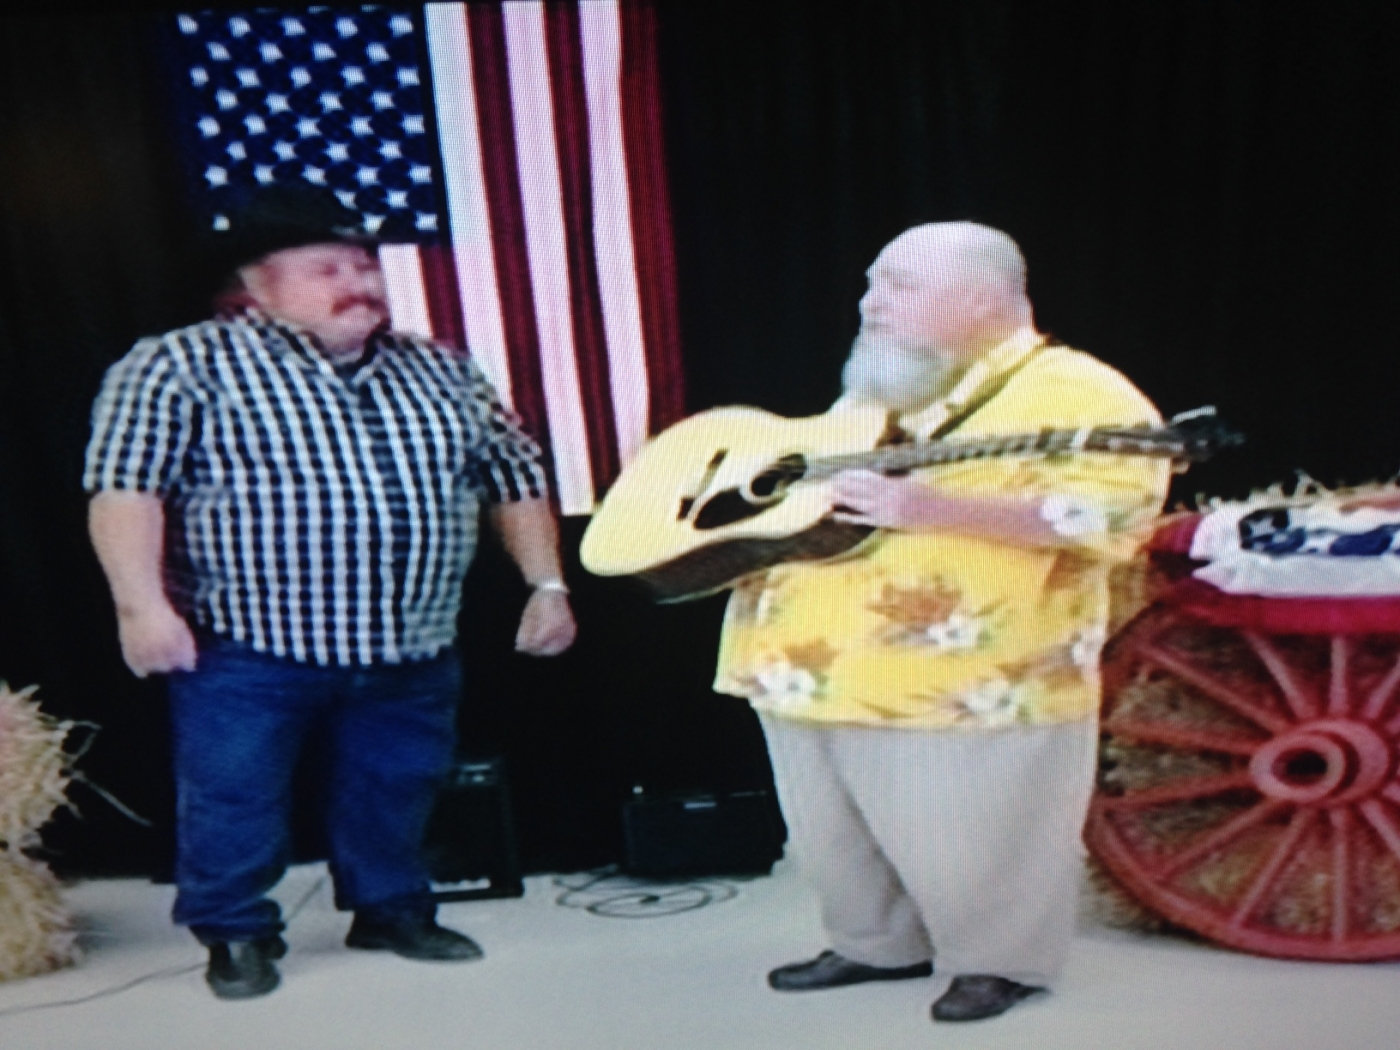 Bluegrass Buddies on TV